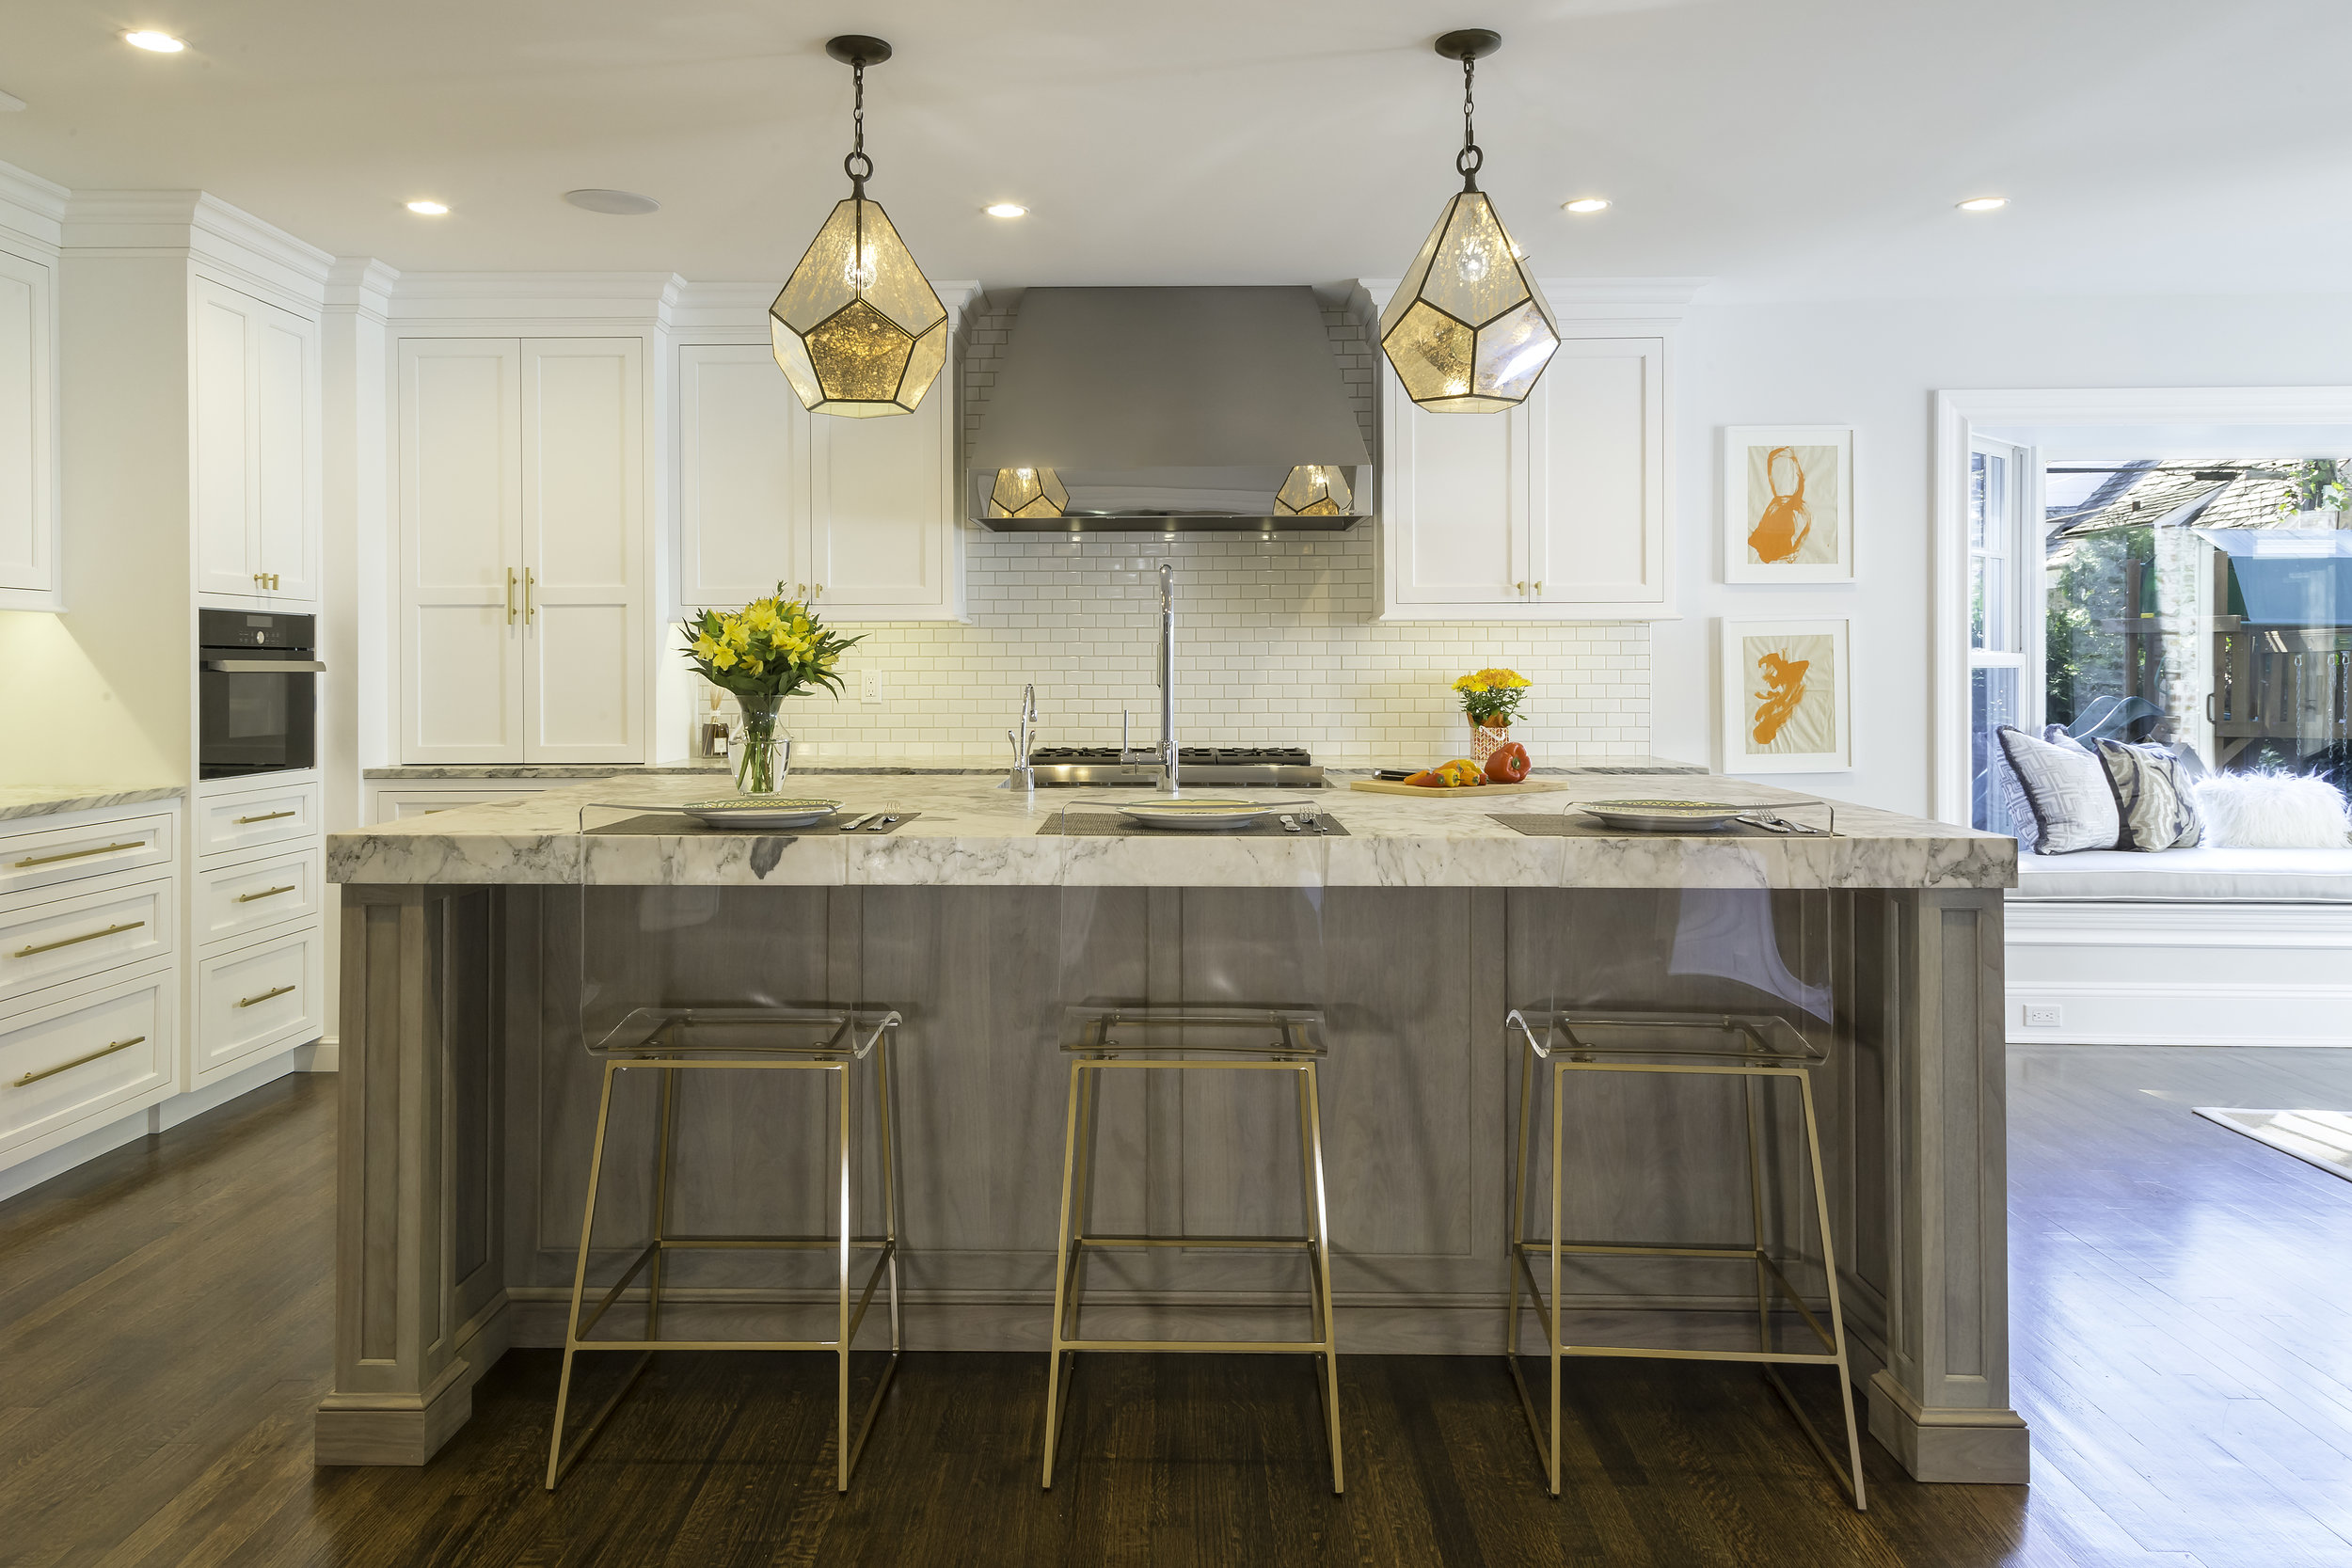 Transitional style kitchen with long white marble kitchen island